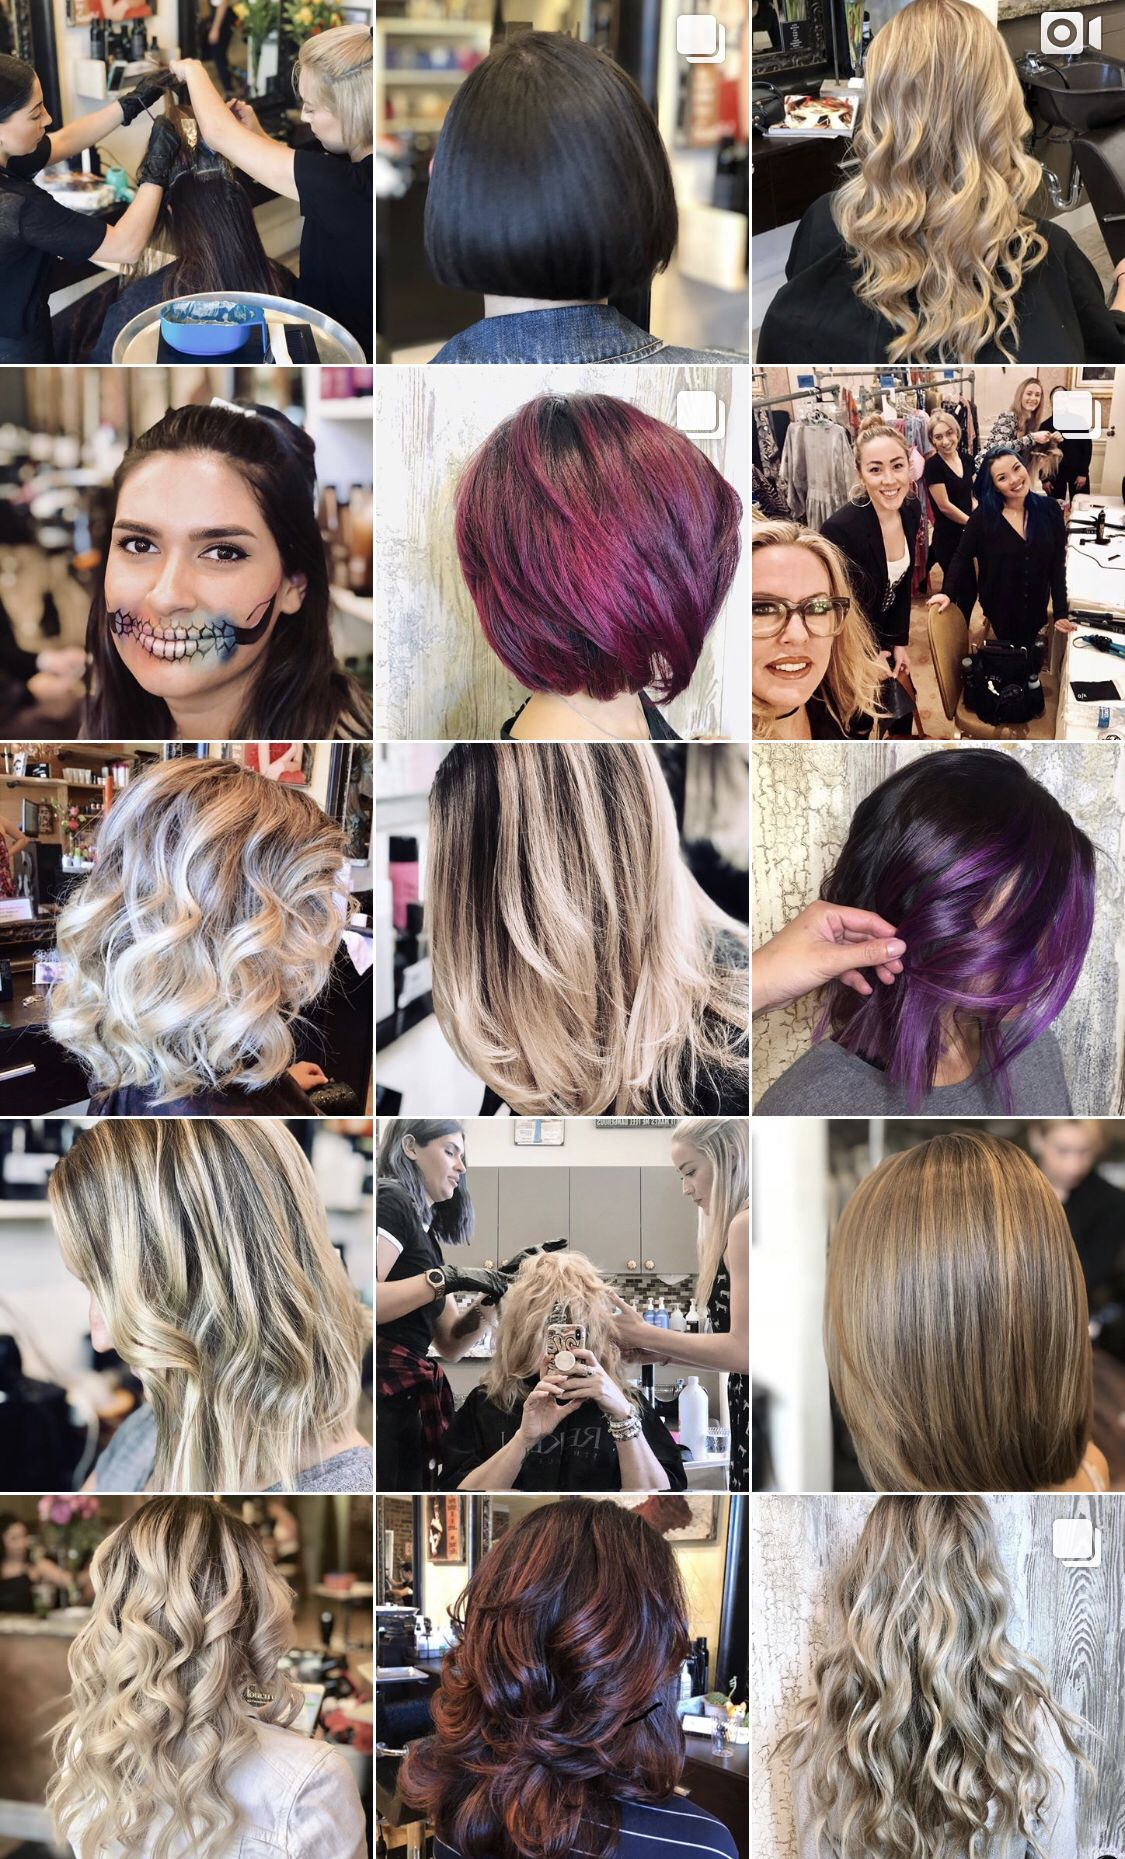 Hair Color Experts Studio Savvy Salon Hair Color Experts